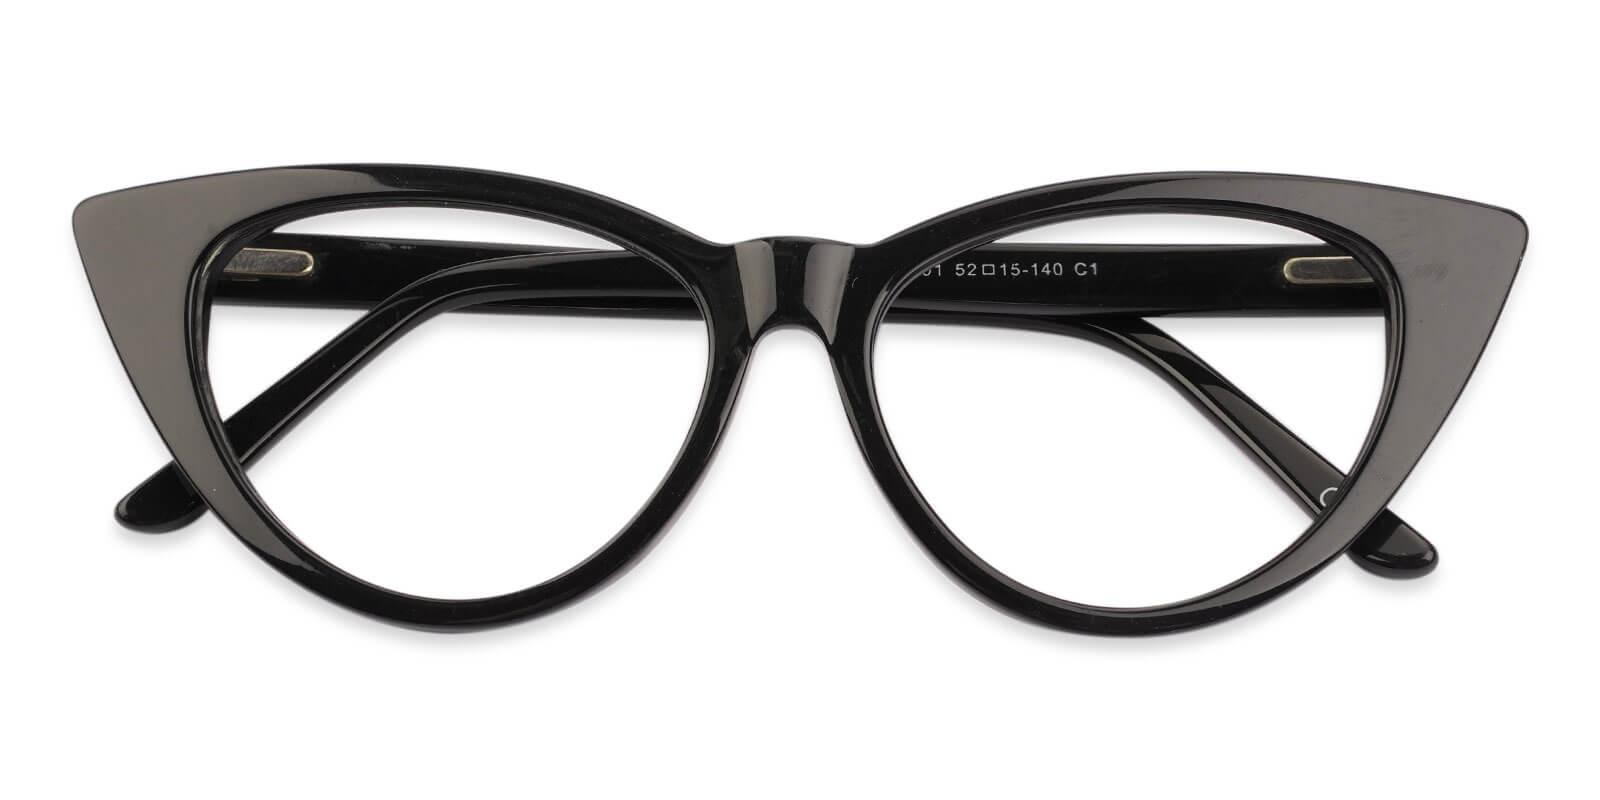 Nora Black Acetate Eyeglasses , SpringHinges , UniversalBridgeFit Frames from ABBE Glasses